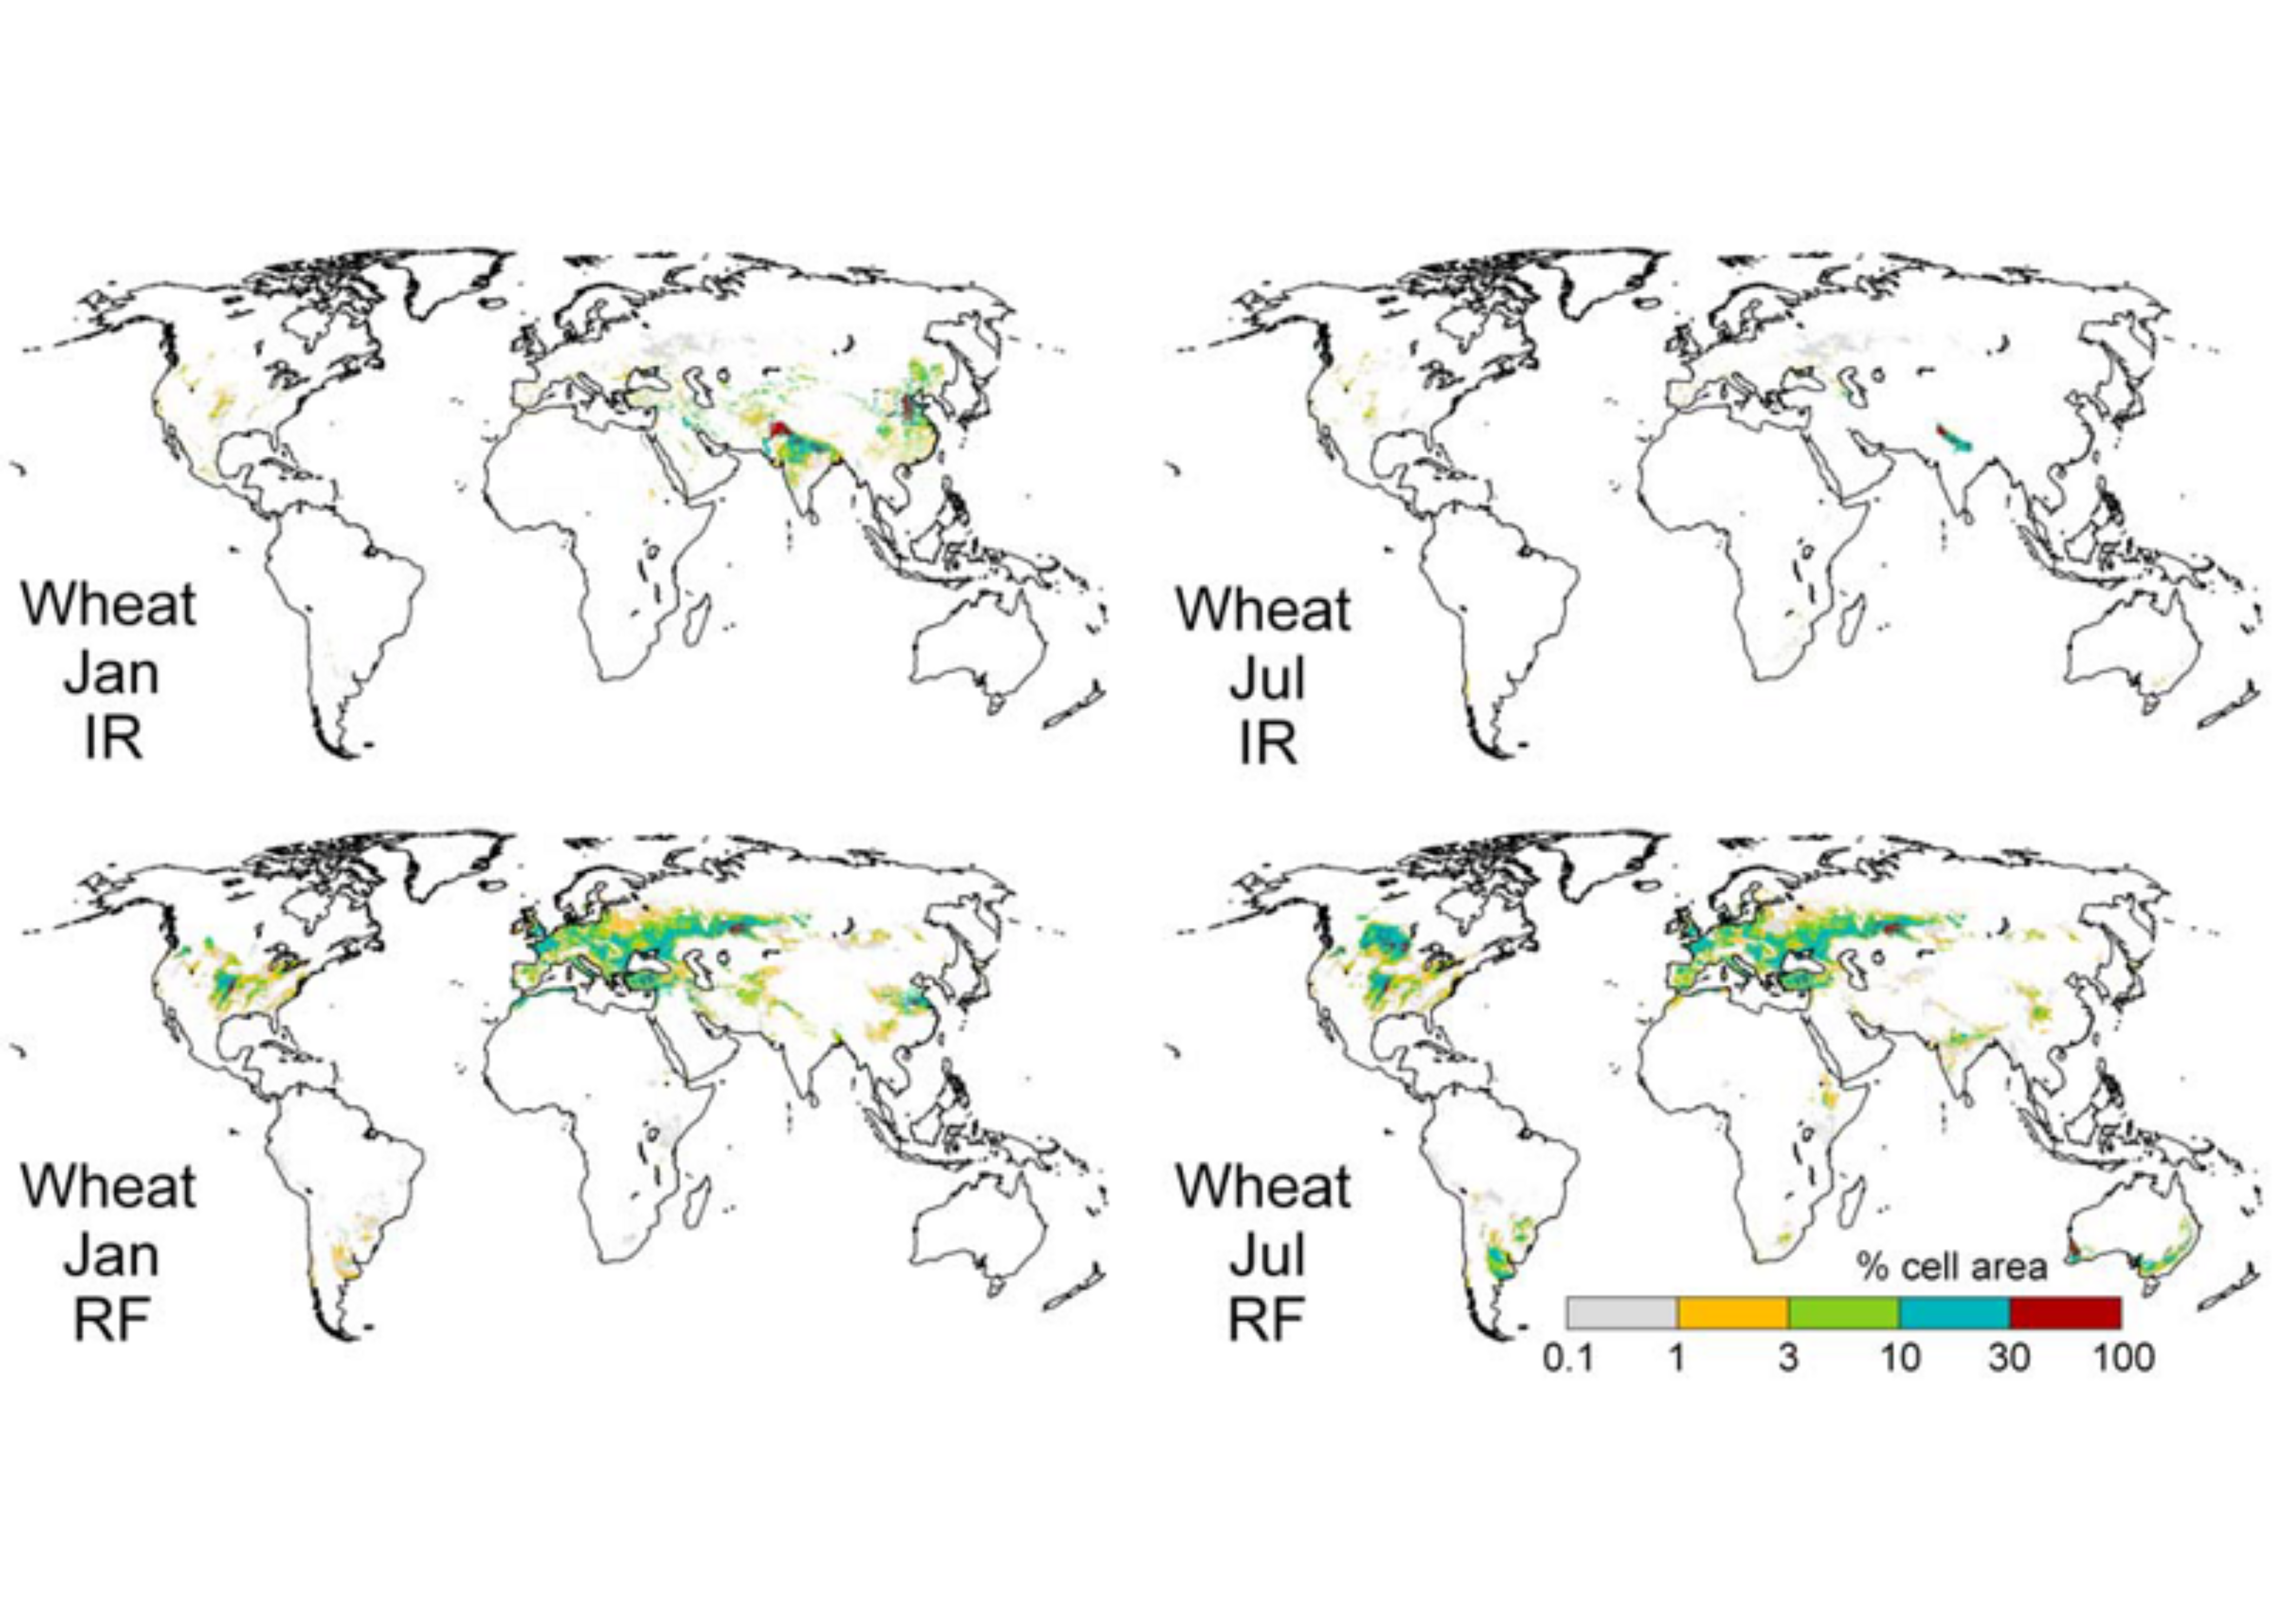 Figure 1: (top) Irrigated (IR) and (bottom) rainfed (RF) monthly growing area of wheat in (left) January and (right) July, in percent of grid cell area, for 1998–2002. Figure originally displayed in Portman, Siebert, and Döll (2008).